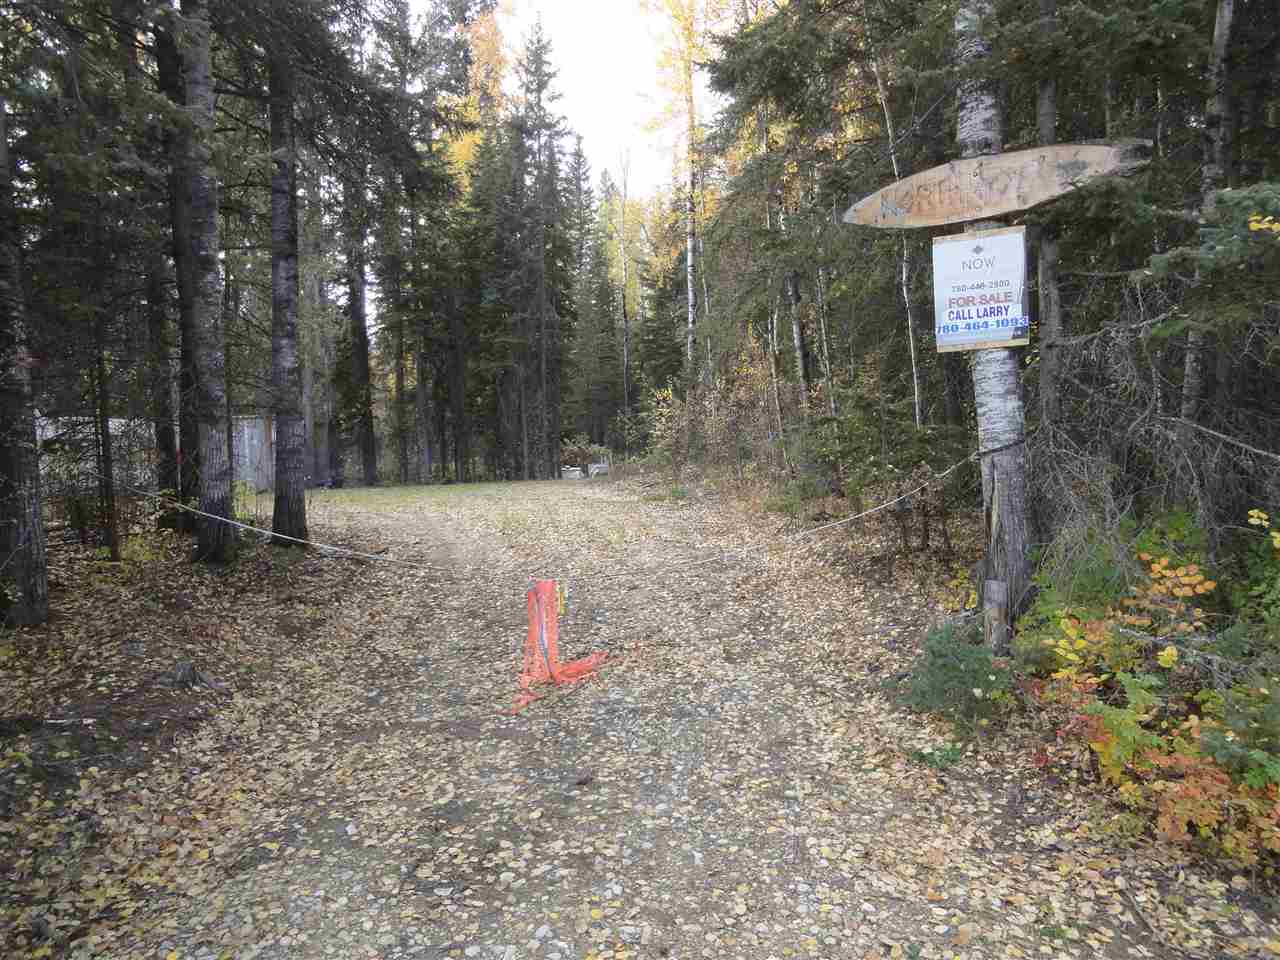 QUADING, HUNTING & FISHING.  1.91 acre mostly treed site (some trees as high as 90 ft.) except cleared building site where two older holiday trailers sit next to 40 x 8 ft. sea can.  Site is adjacent to thousands of miles of scenic trails on Crown land. 3 months hunting season. Owner yearly catch 14 lb. pike.  This site is located across the road from the lake. MD of Opportunity will provide for free water and sewer services to the site if new owner builds an approved home.  Important: Sea Can can't remain on site unless owner builds a permanent resident prior to June 2018.  All paved roads to Sandy Lake, which is 3 hr. drive N of Edmonton. Sandy Lake has 120 lots with approx. 45 homes. NOTE: Listing Realtor is one of the owners.